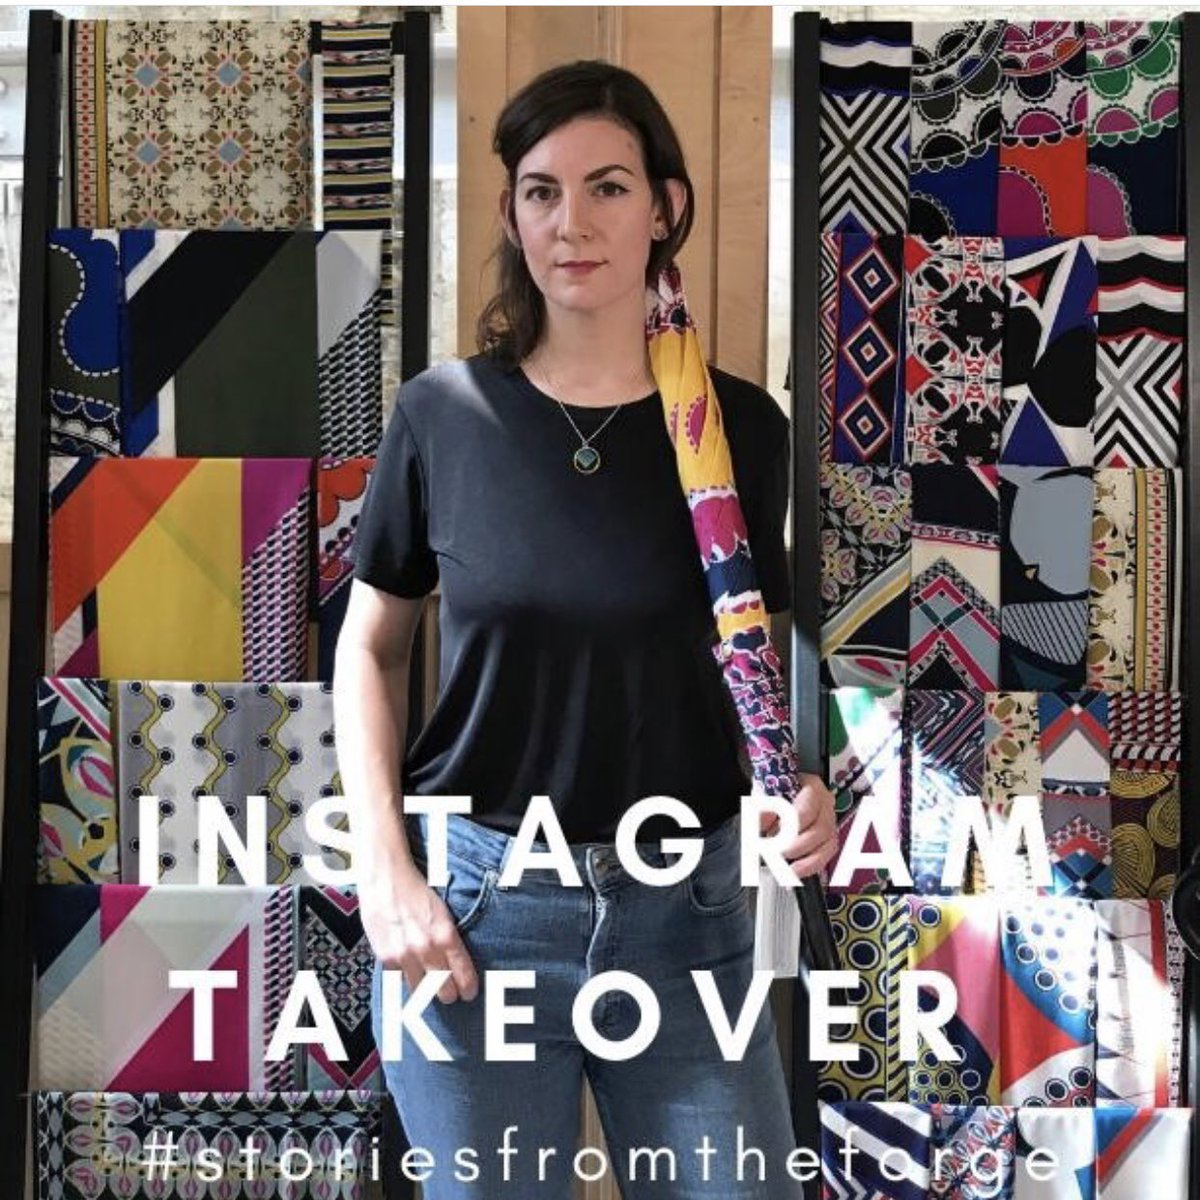 This week I'm super excited to be taking over the @CraftCentralUK #Instagram feedJoin me from my studio as I share my #Storiesfromtheforge 9-14 Sept https://instagram.com/p/B2MLVbxAR7K/   #DesignerTakeover pic.twitter.com/Icu8Xjx5J7